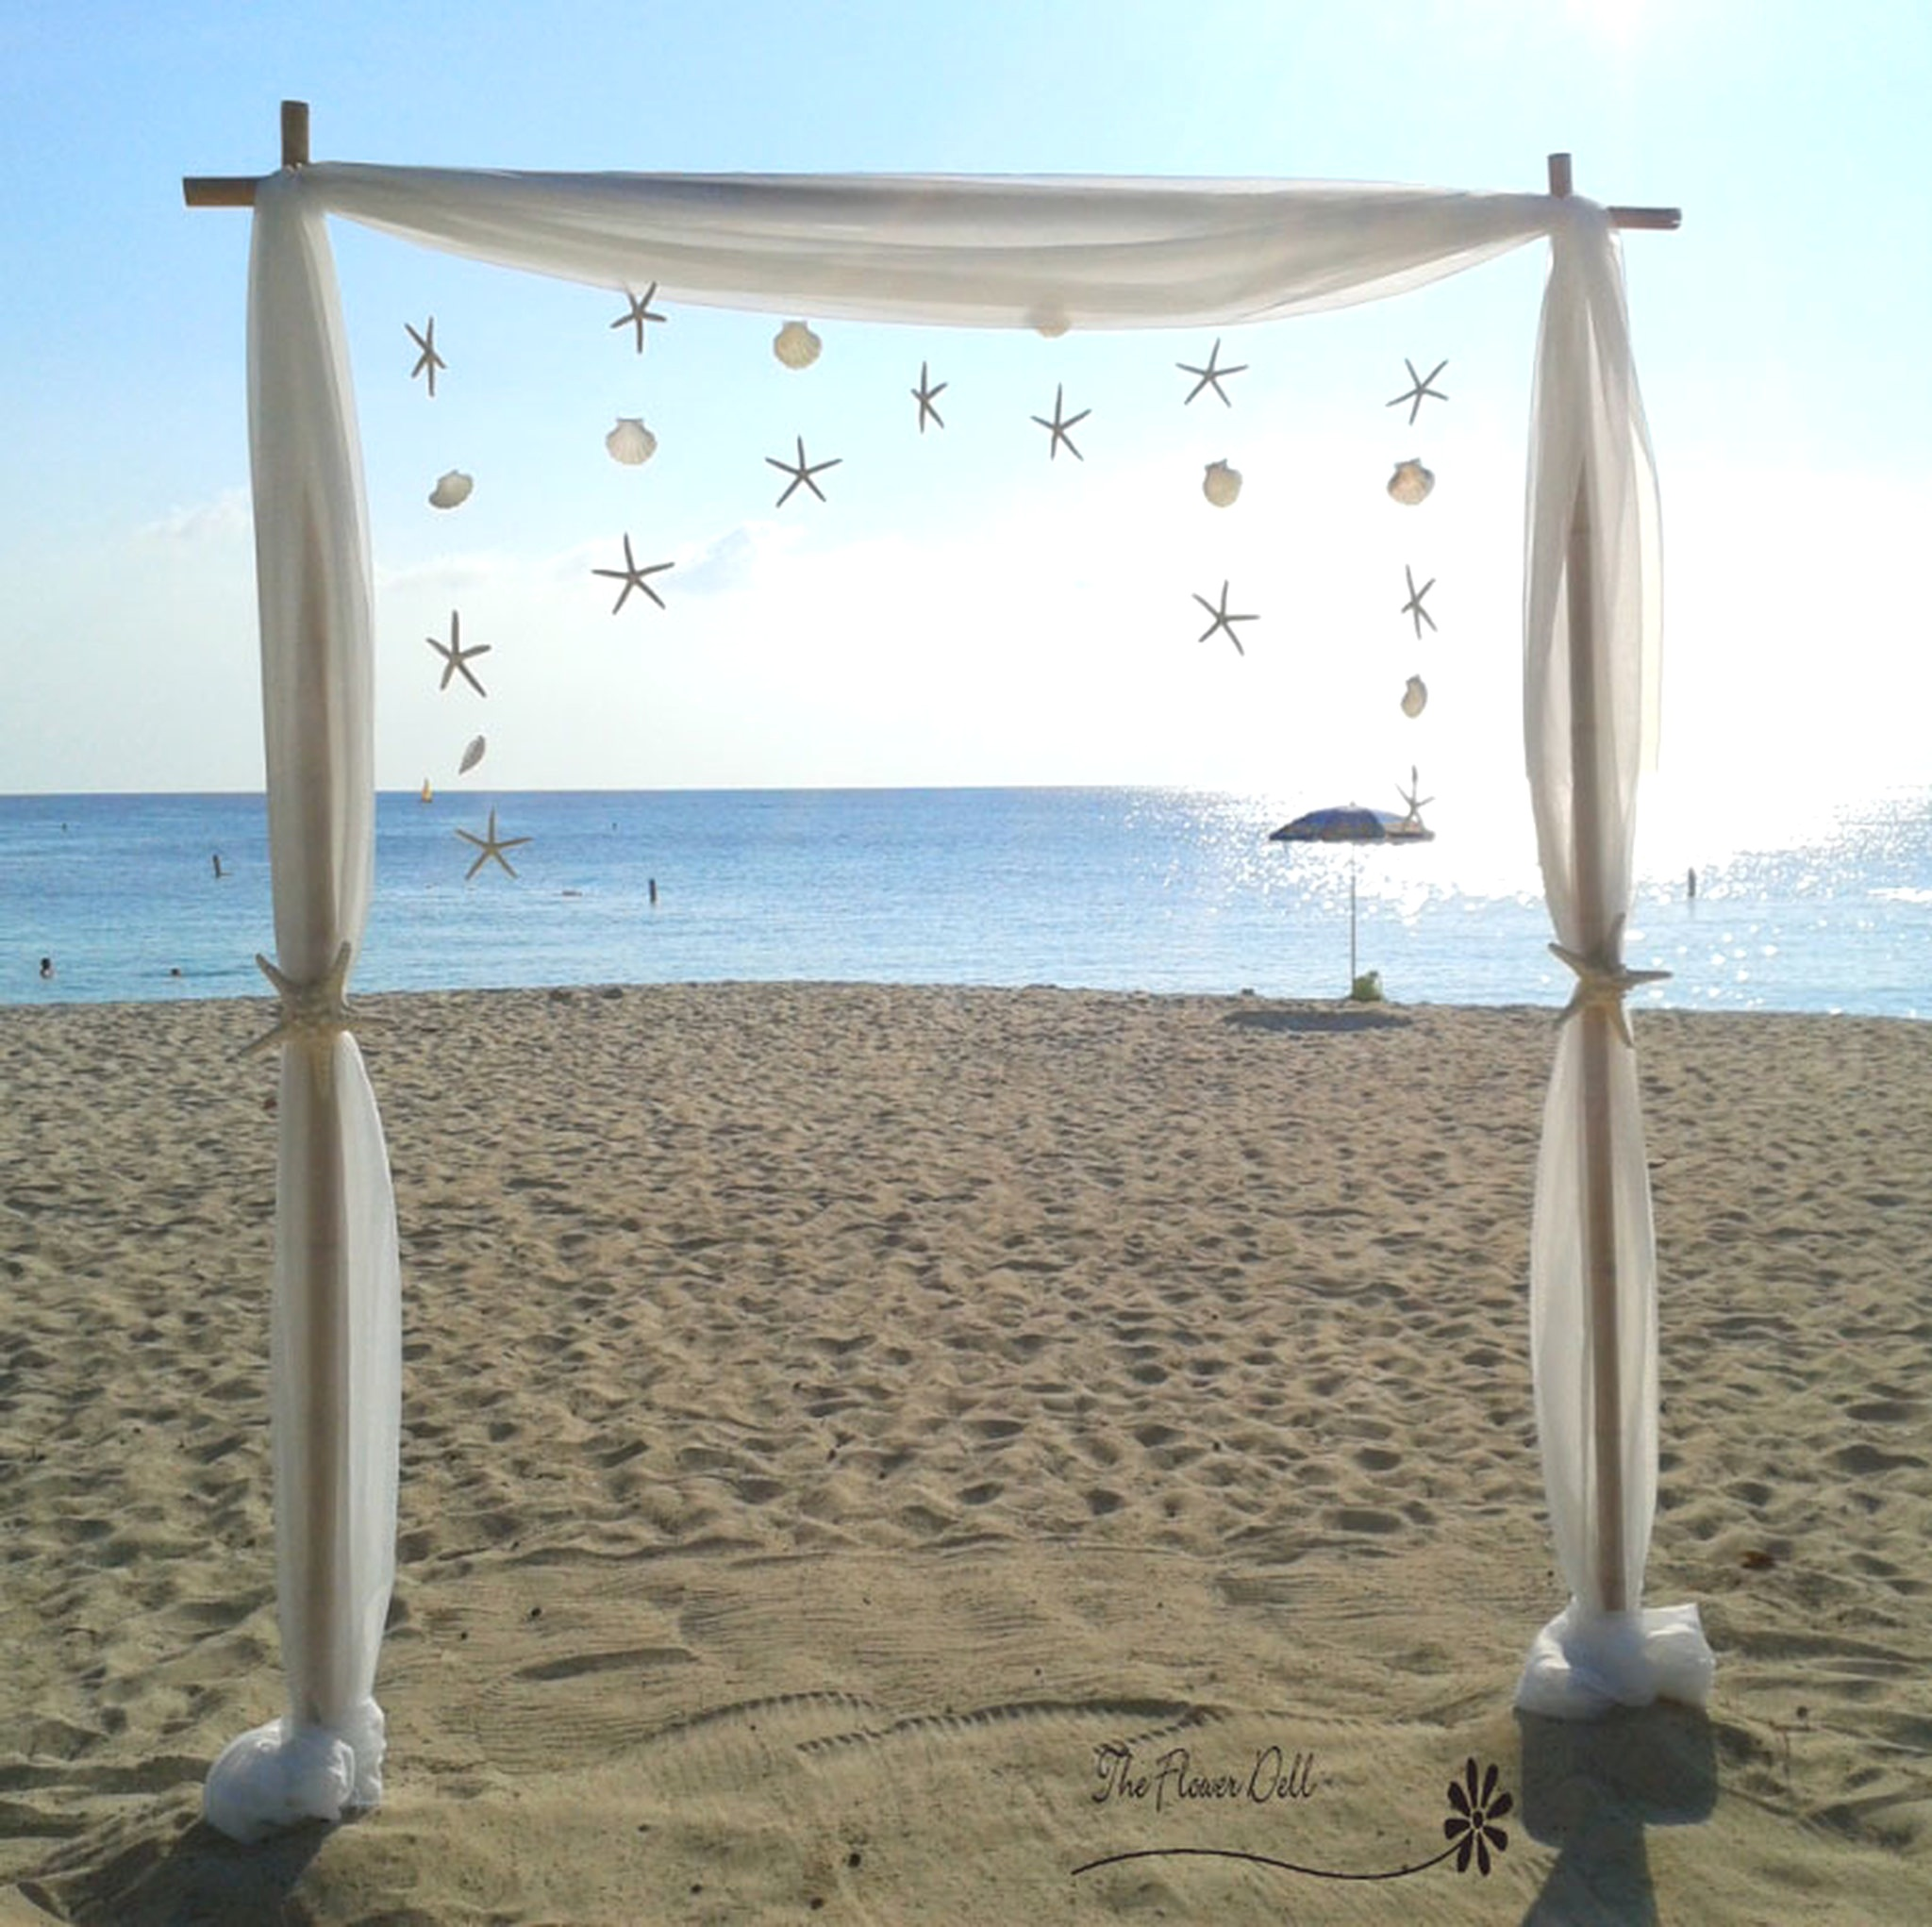 Ceremony-arch-with-shells.jpg